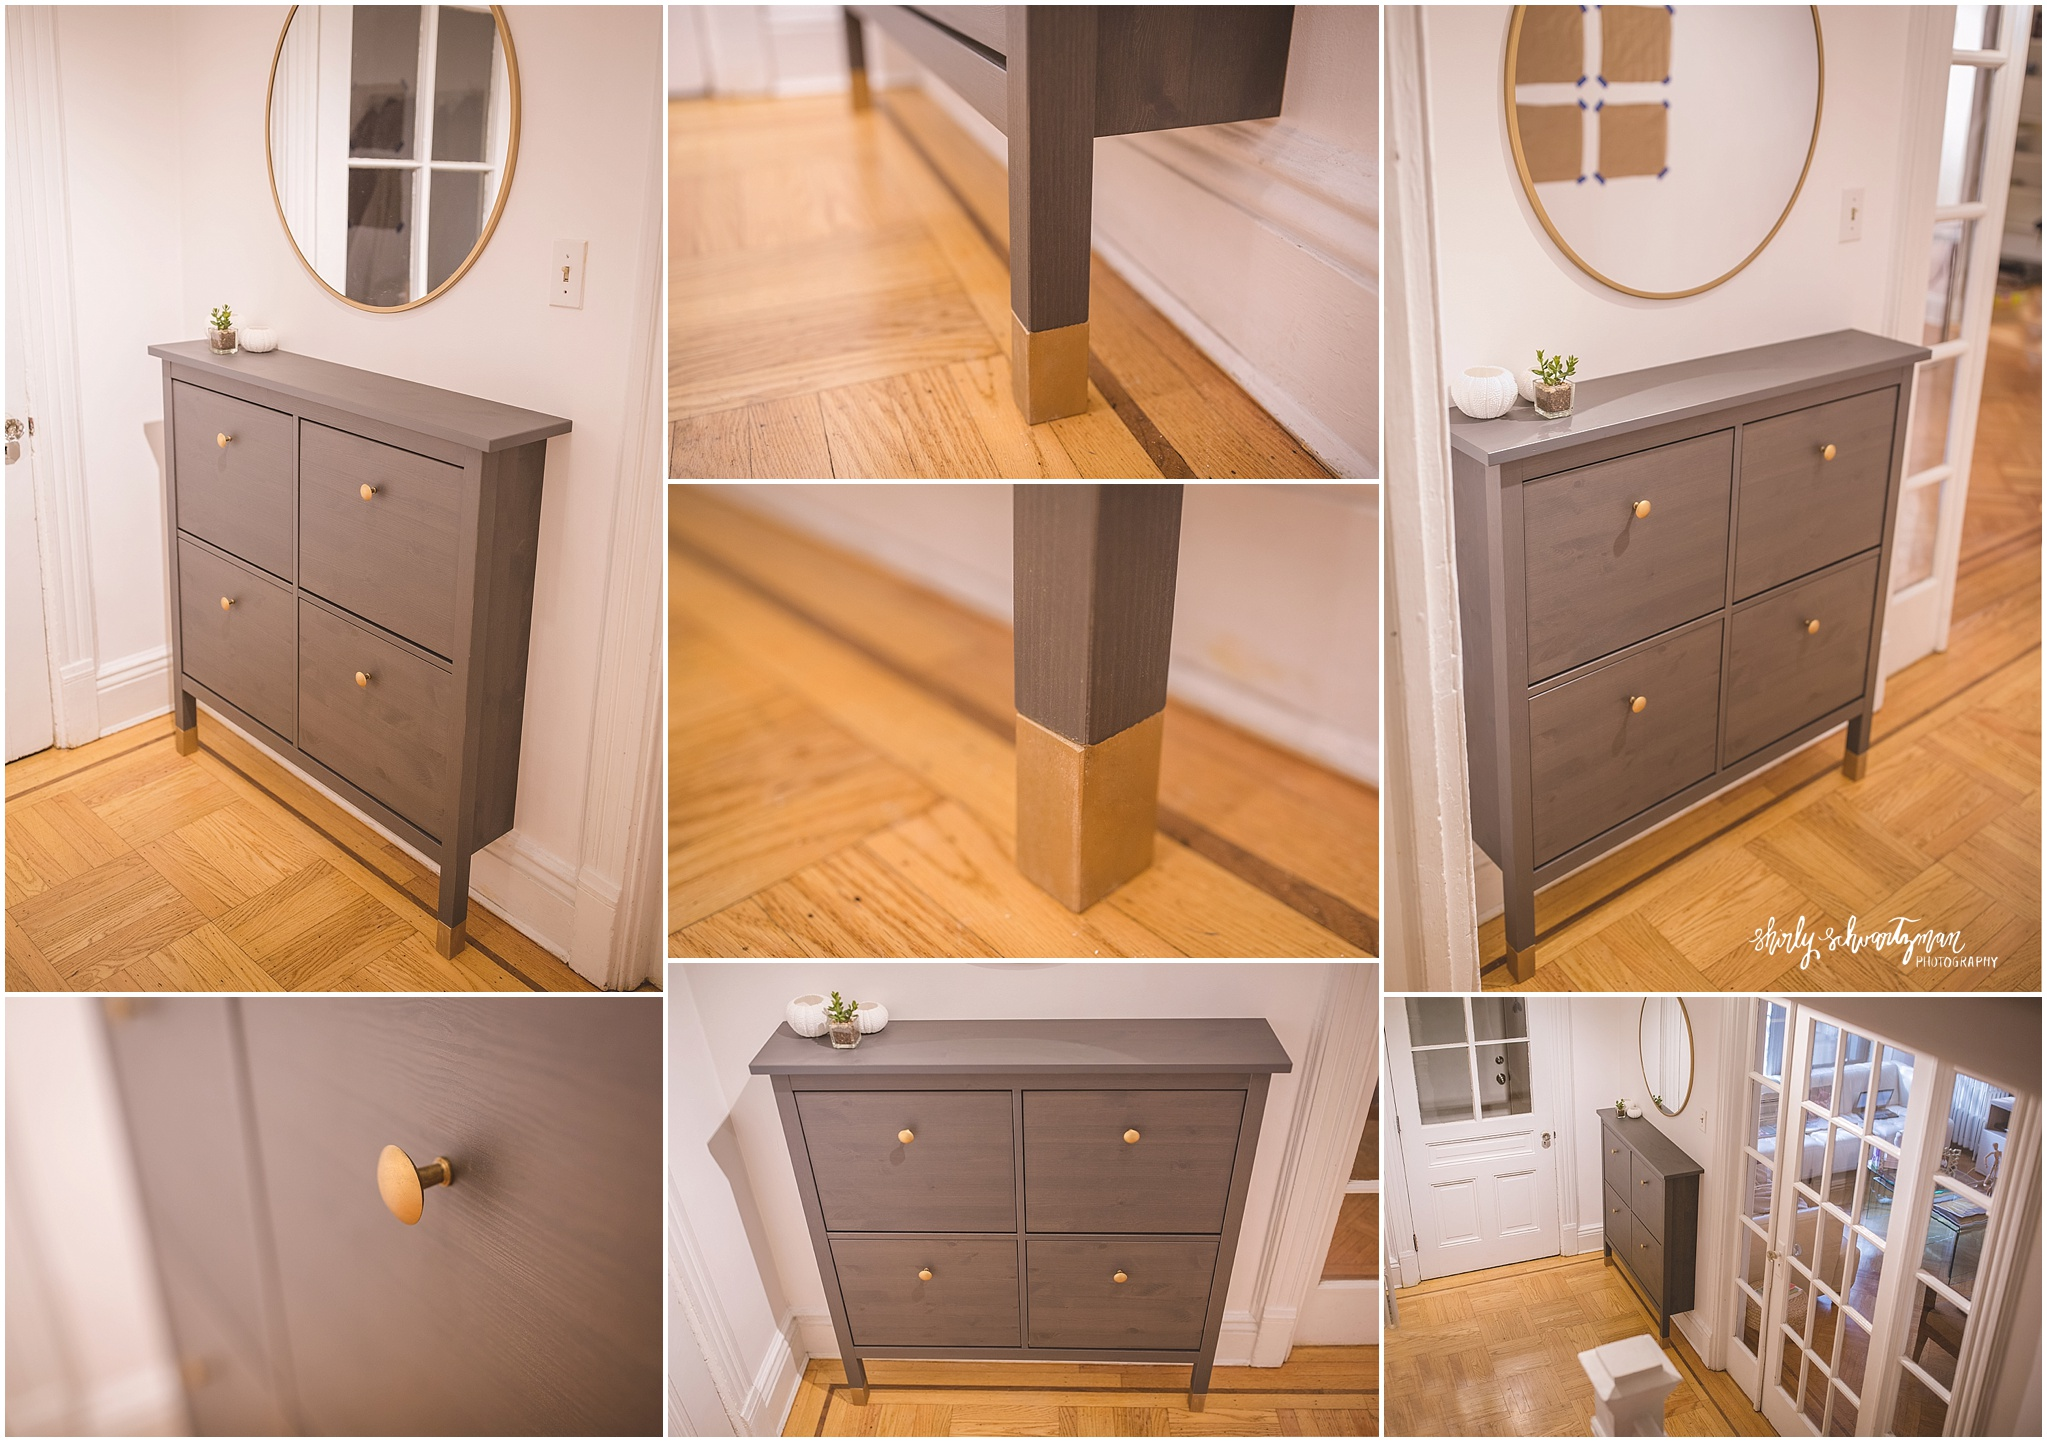 ikea hack hemnes shoe cabinet storage for tall baseboards. Black Bedroom Furniture Sets. Home Design Ideas